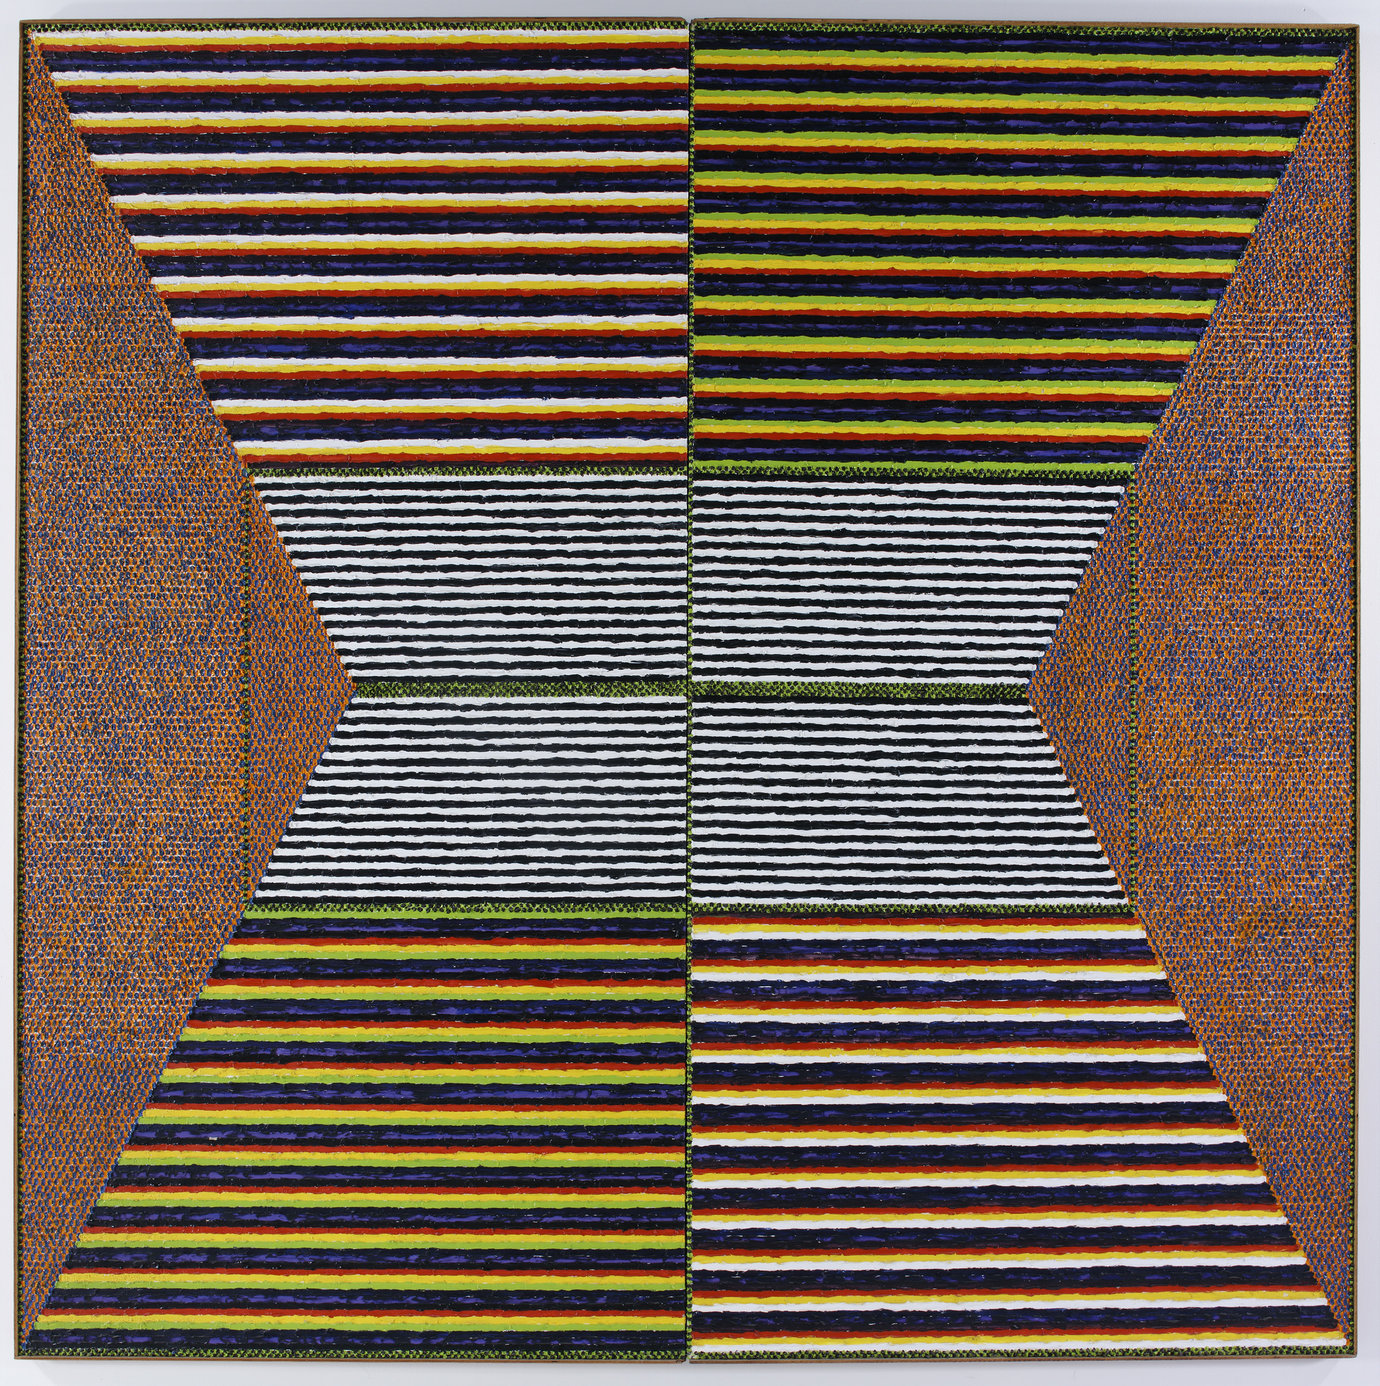 ", 1967. Oil on canvas, 8&apos; 1"" x 8&apos; 1"" (246.4 cm x 246.4 cm)."